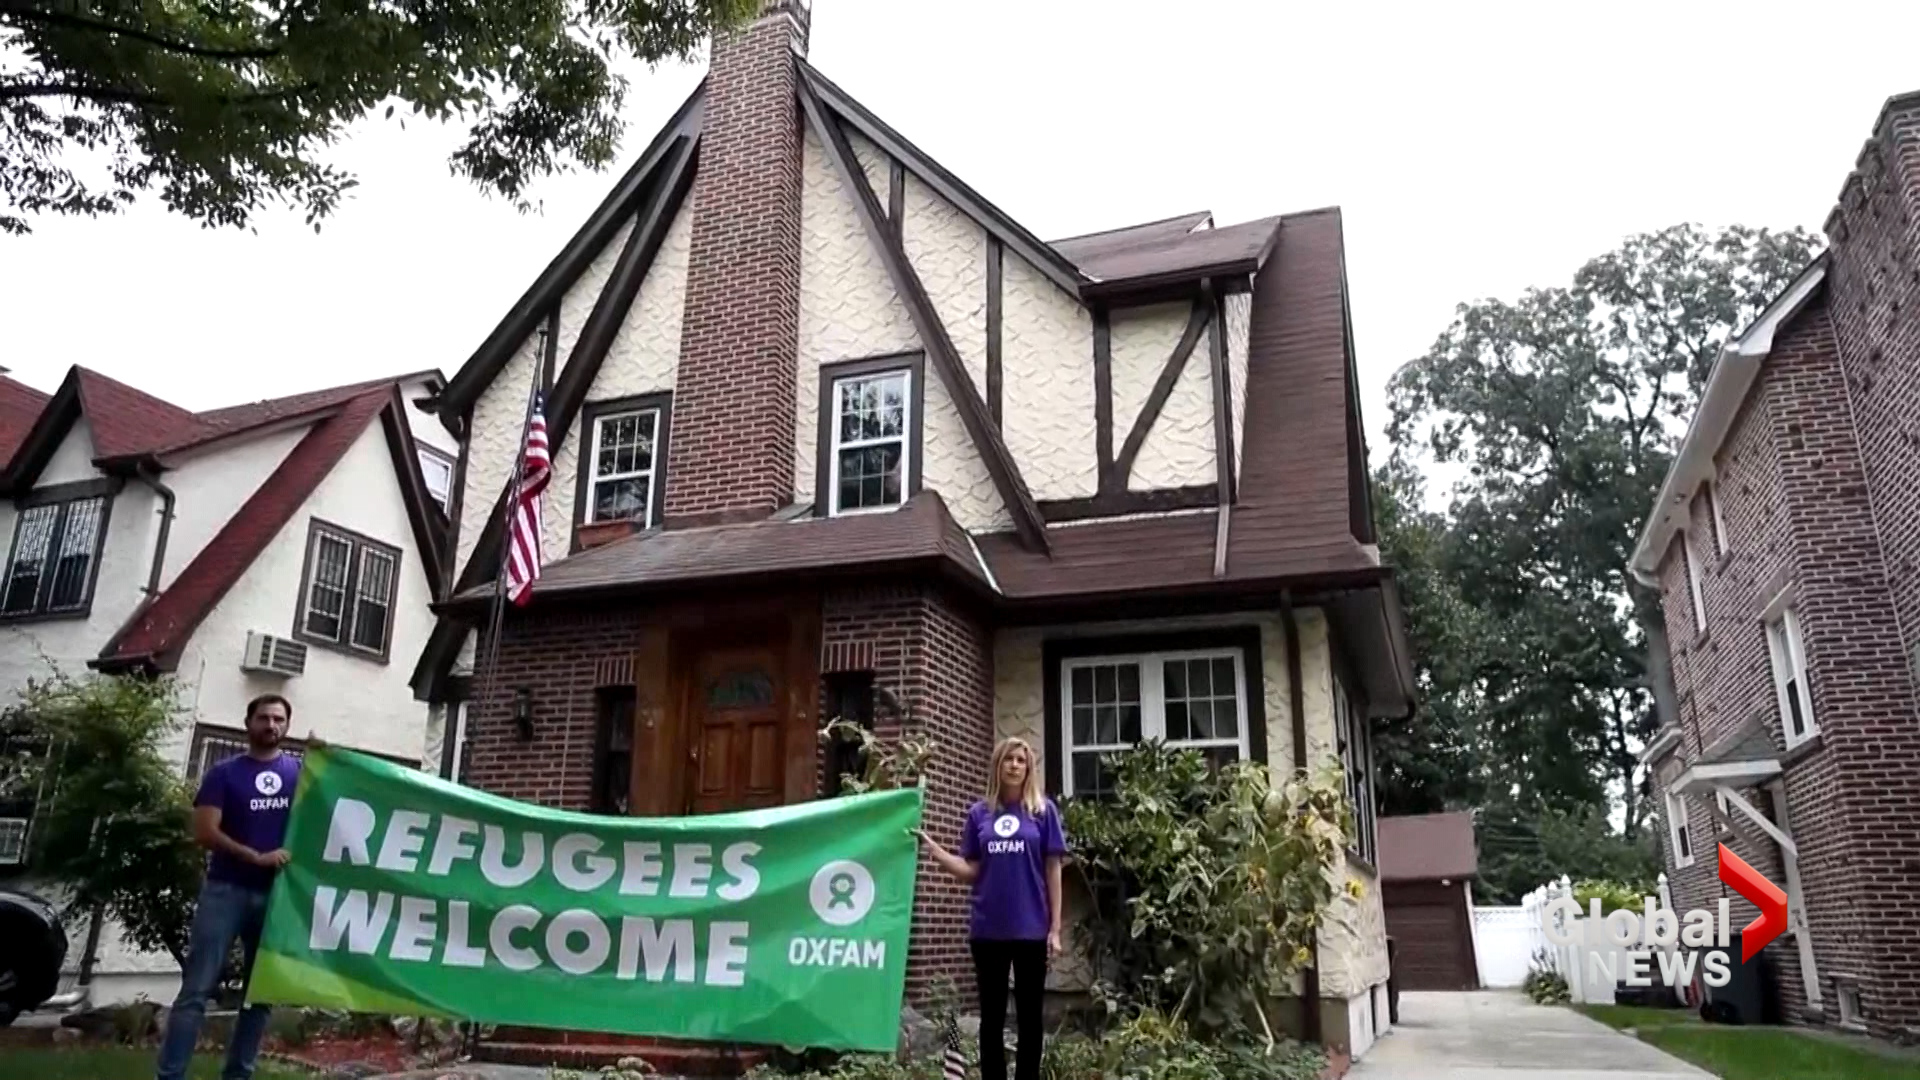 Oxfam rents President Donald Trump's childhood home for refugees